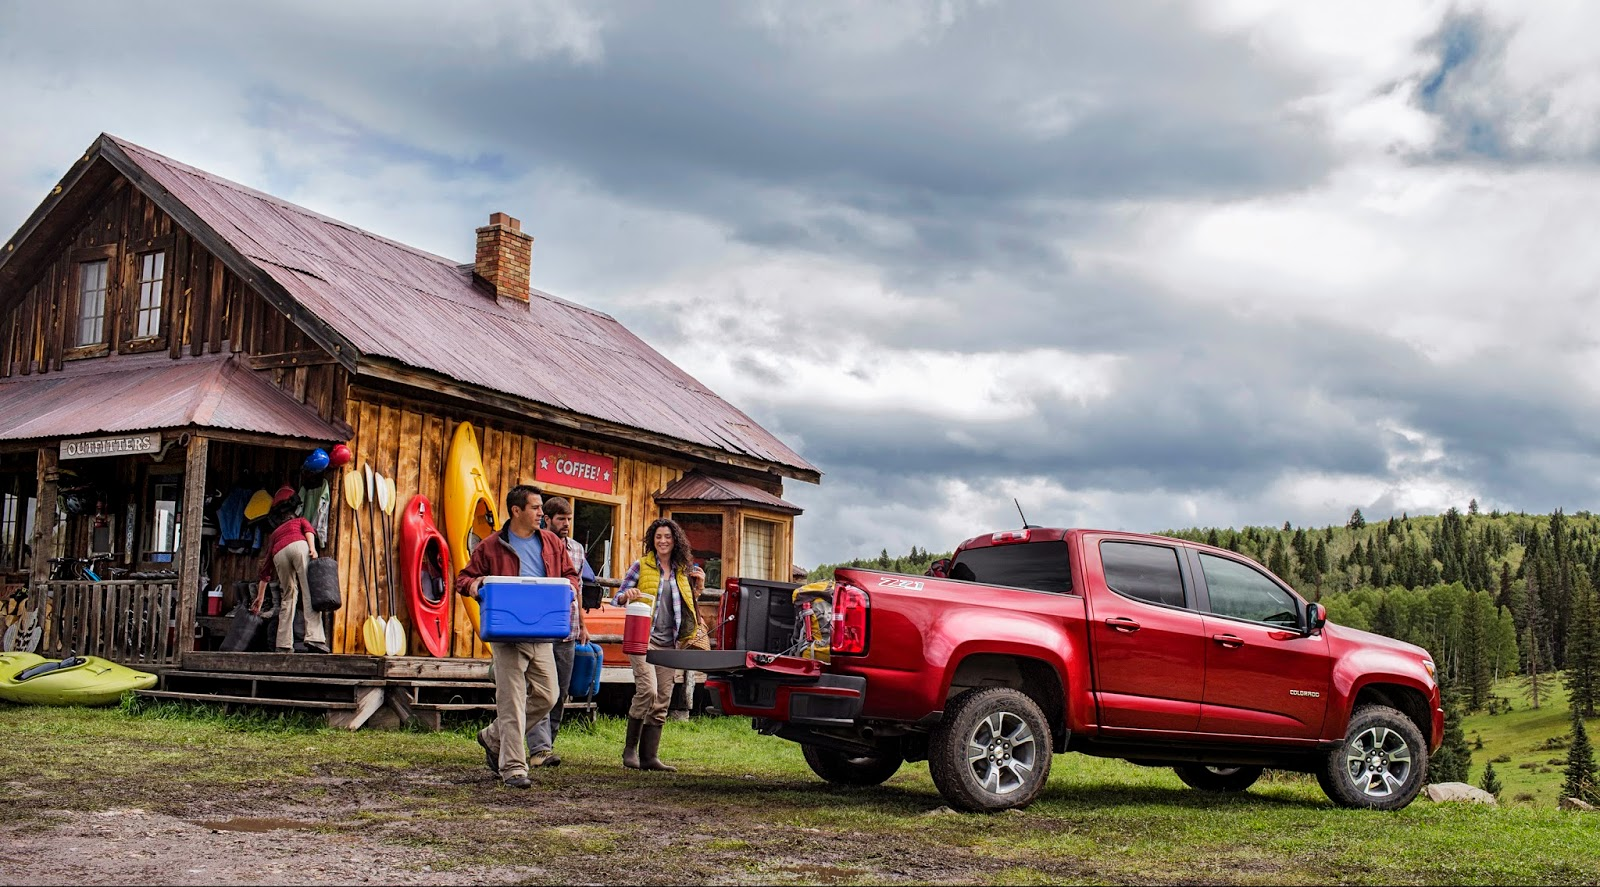 2015 Chevrolet Colorado Pricing Announced at $20,995